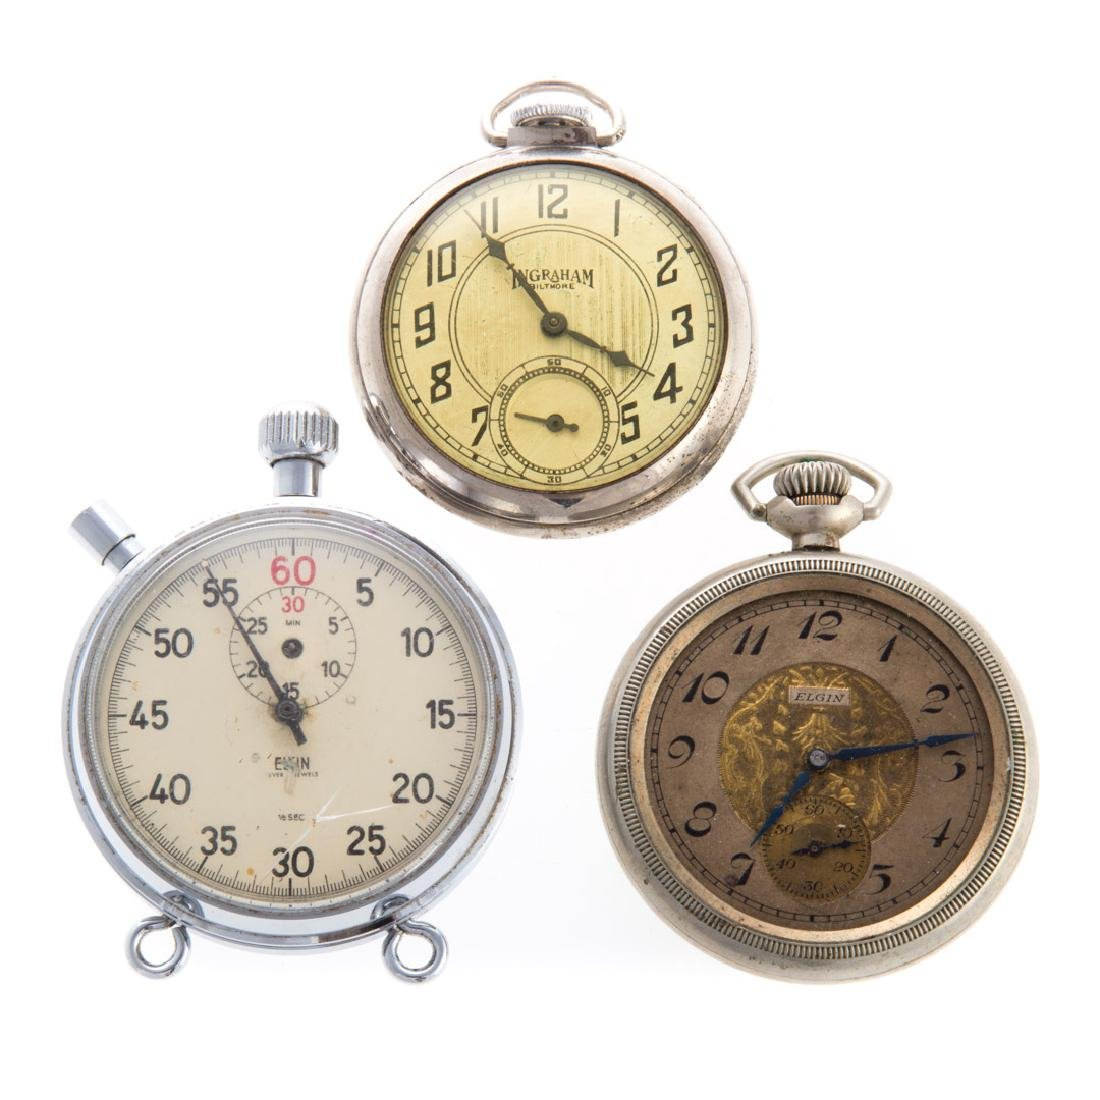 Two Pocket Watches & a Stop Watch